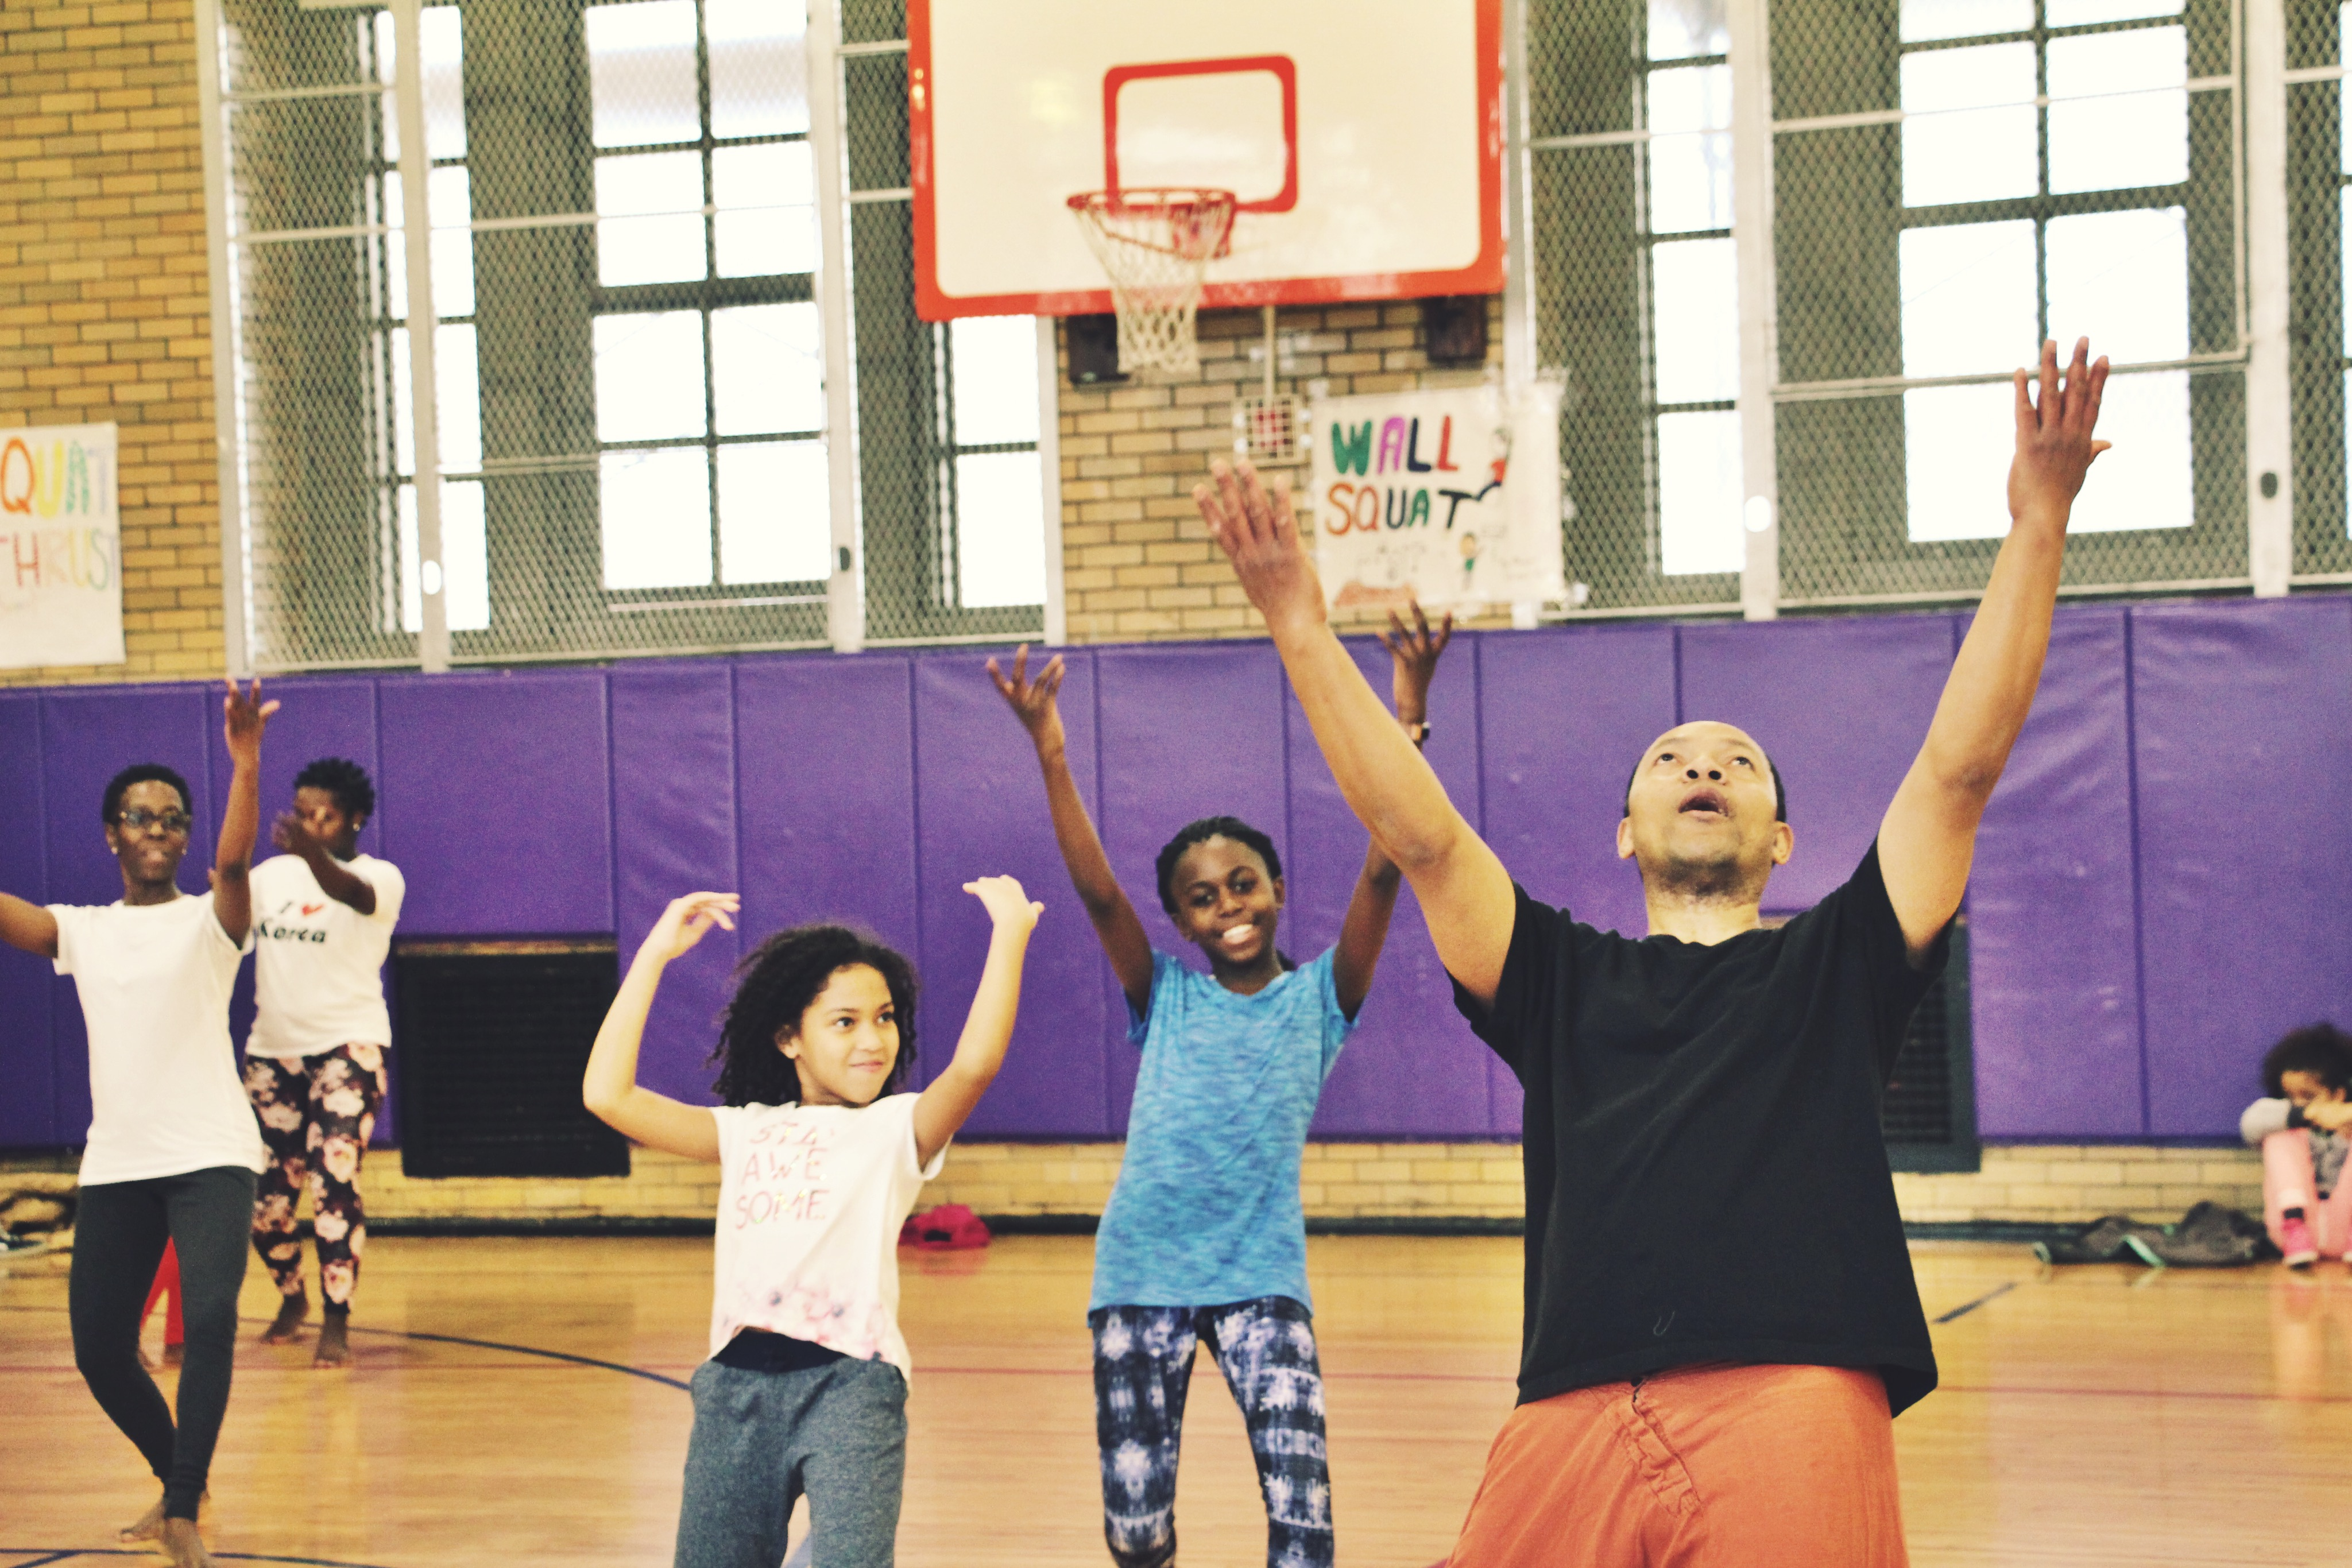 Brooklyn's Moving Together: Free Family Dance Series